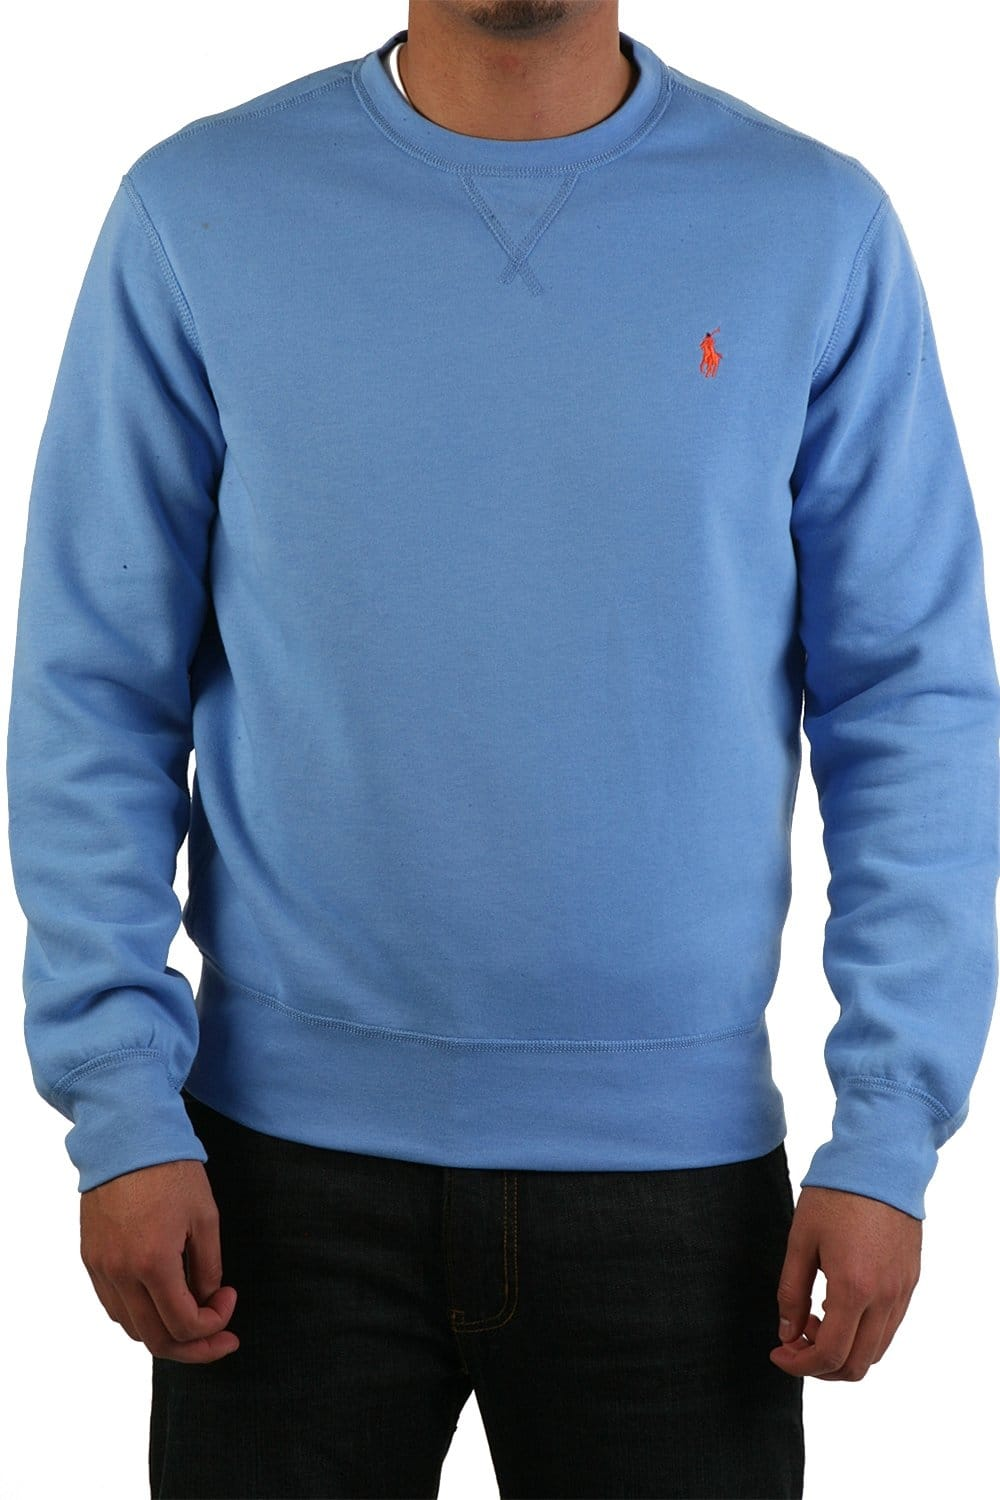 ralph lauren classic sweatshirt in blue a14kcc24b04jm a5420 polo ralph lauren from sage. Black Bedroom Furniture Sets. Home Design Ideas